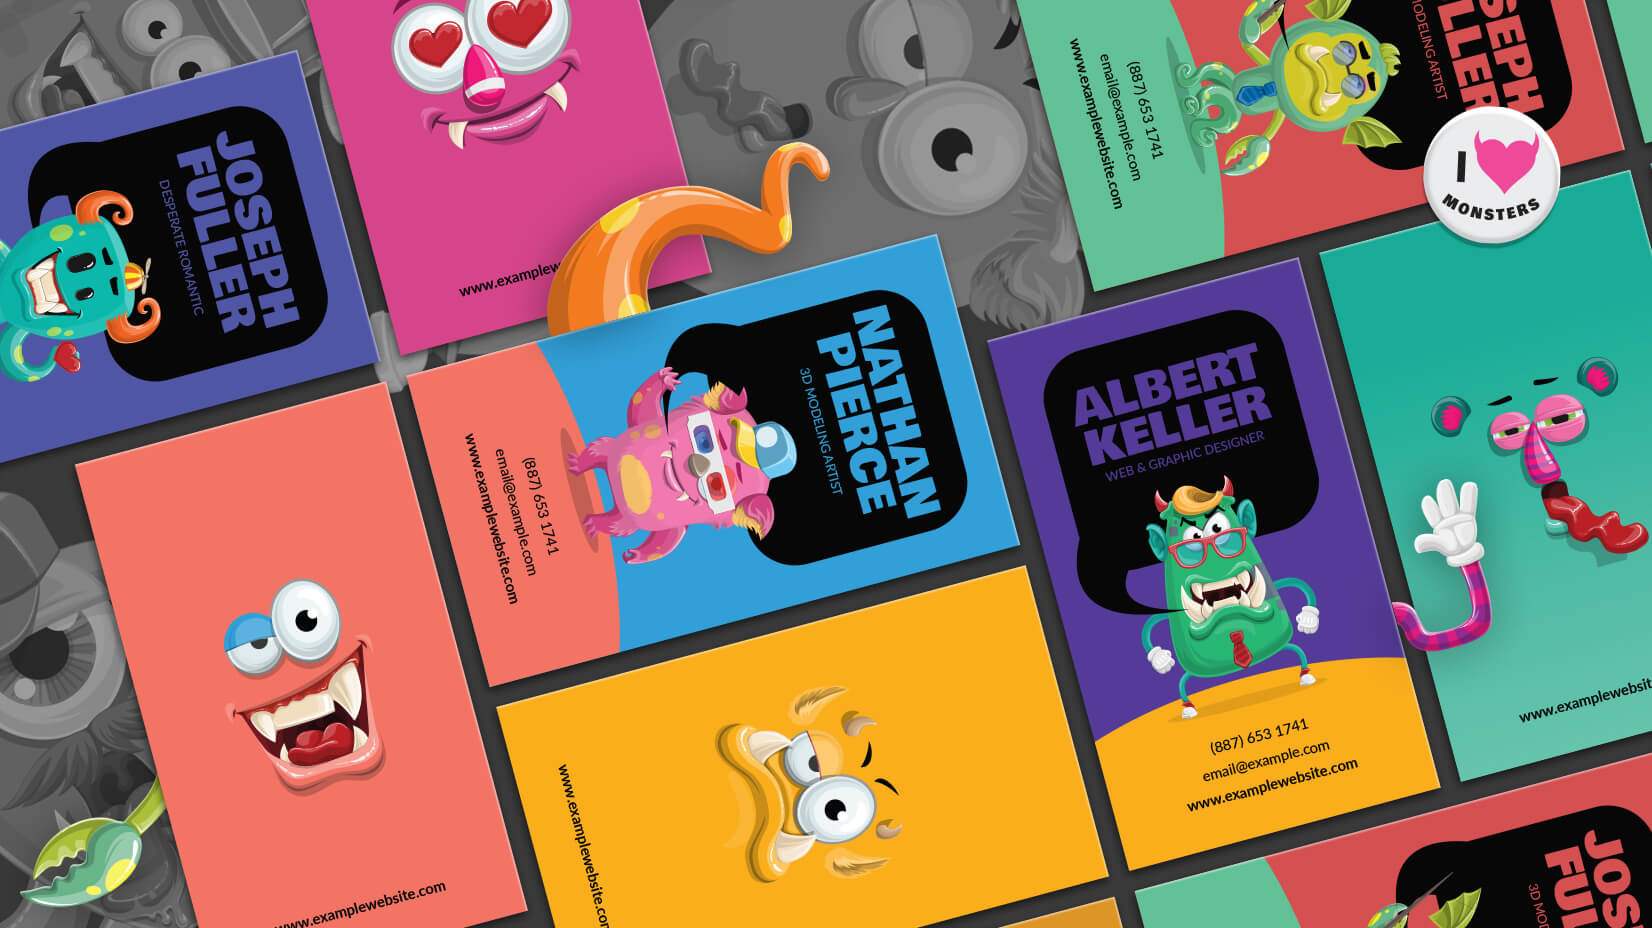 Monster business card template in illustrator tutorial freebie in this tutorial we will create a playful full bleed print ready monster business card template weve decided to go for a monster theme with this one but fbccfo Gallery